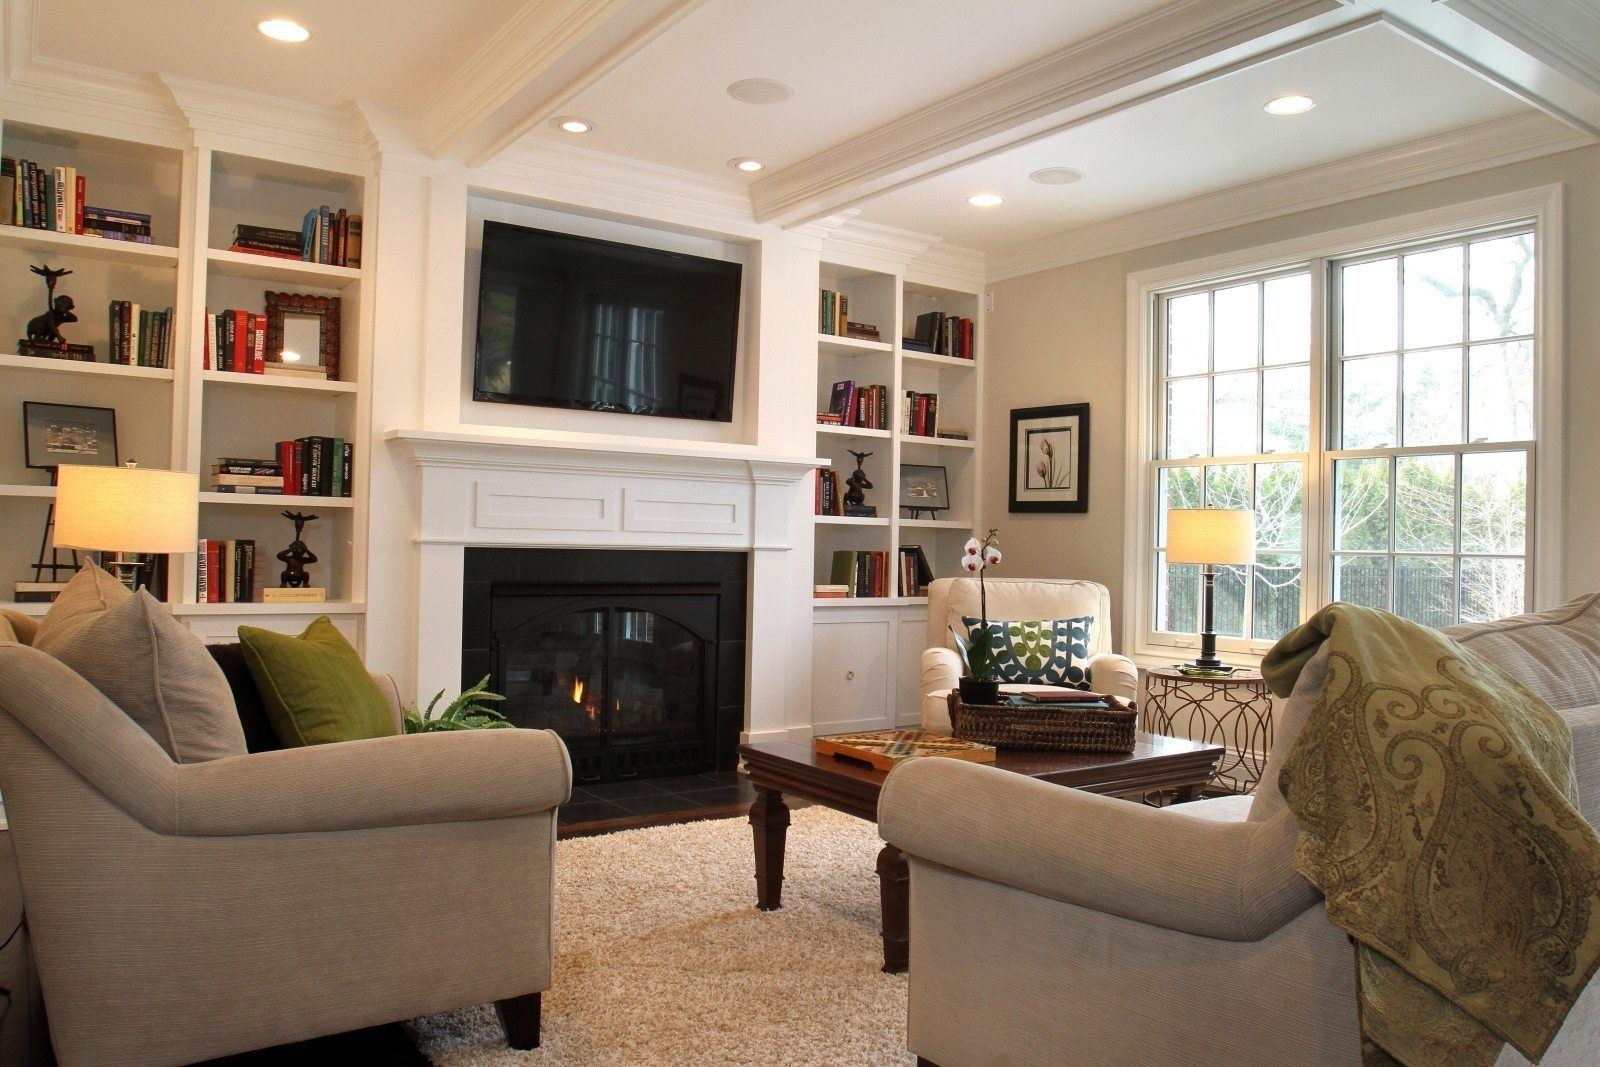 14x12 Living Room Ideas Family Room Layout Small Family Room Family Room Decorating